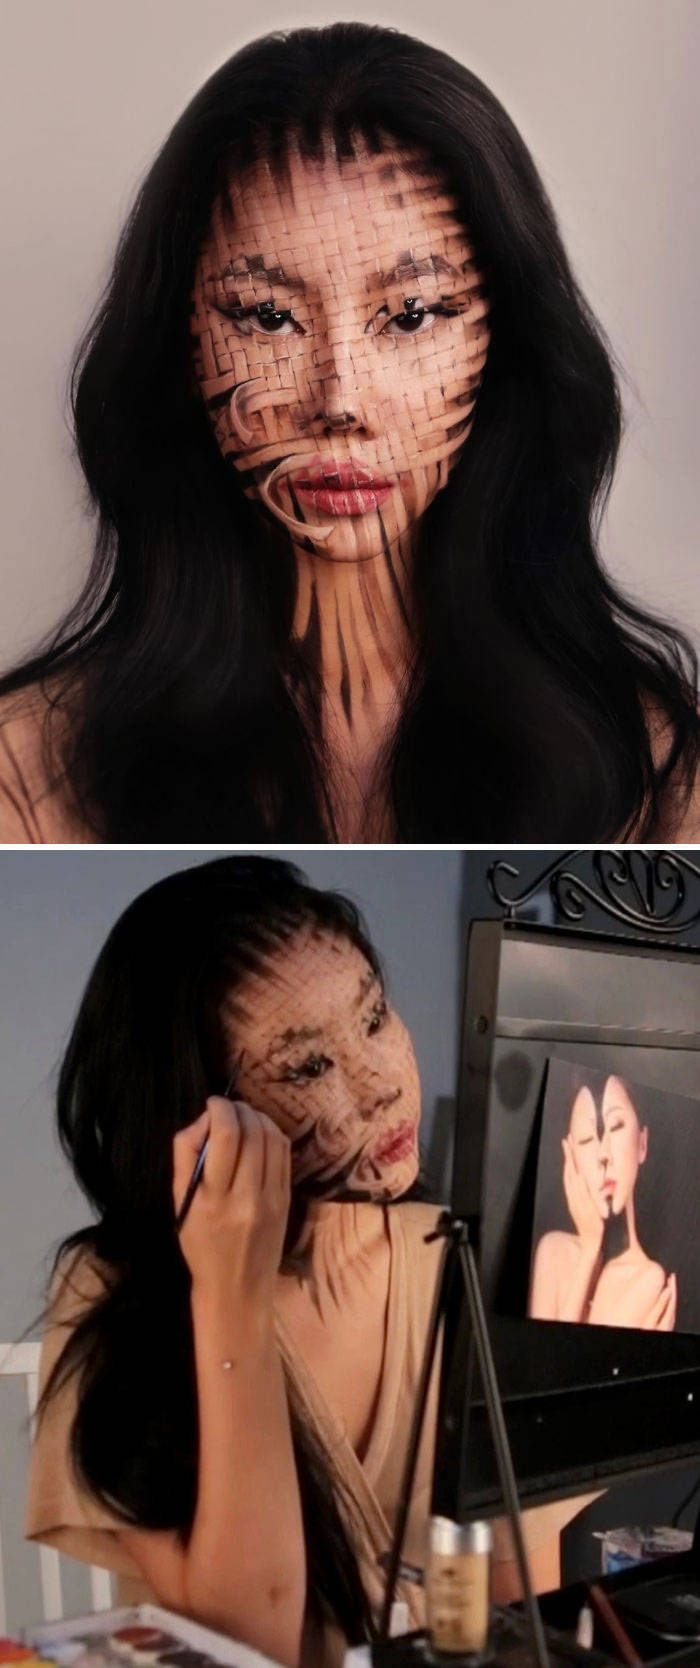 This Artist Can Seriously Mess With Your Eyes Using Her Makeup Skills